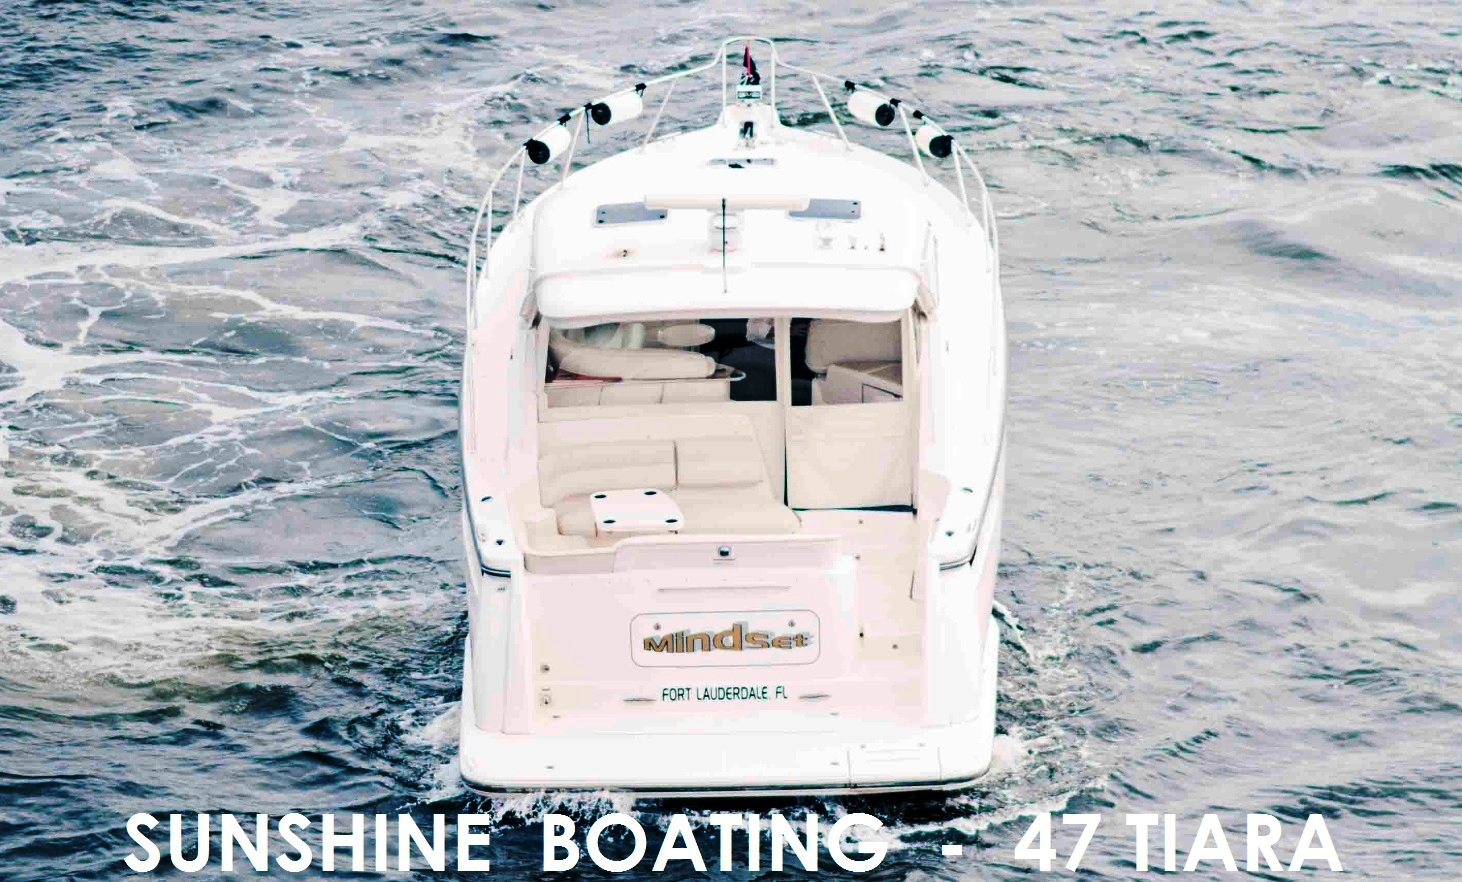 sunshine-boating-47-tiara-7